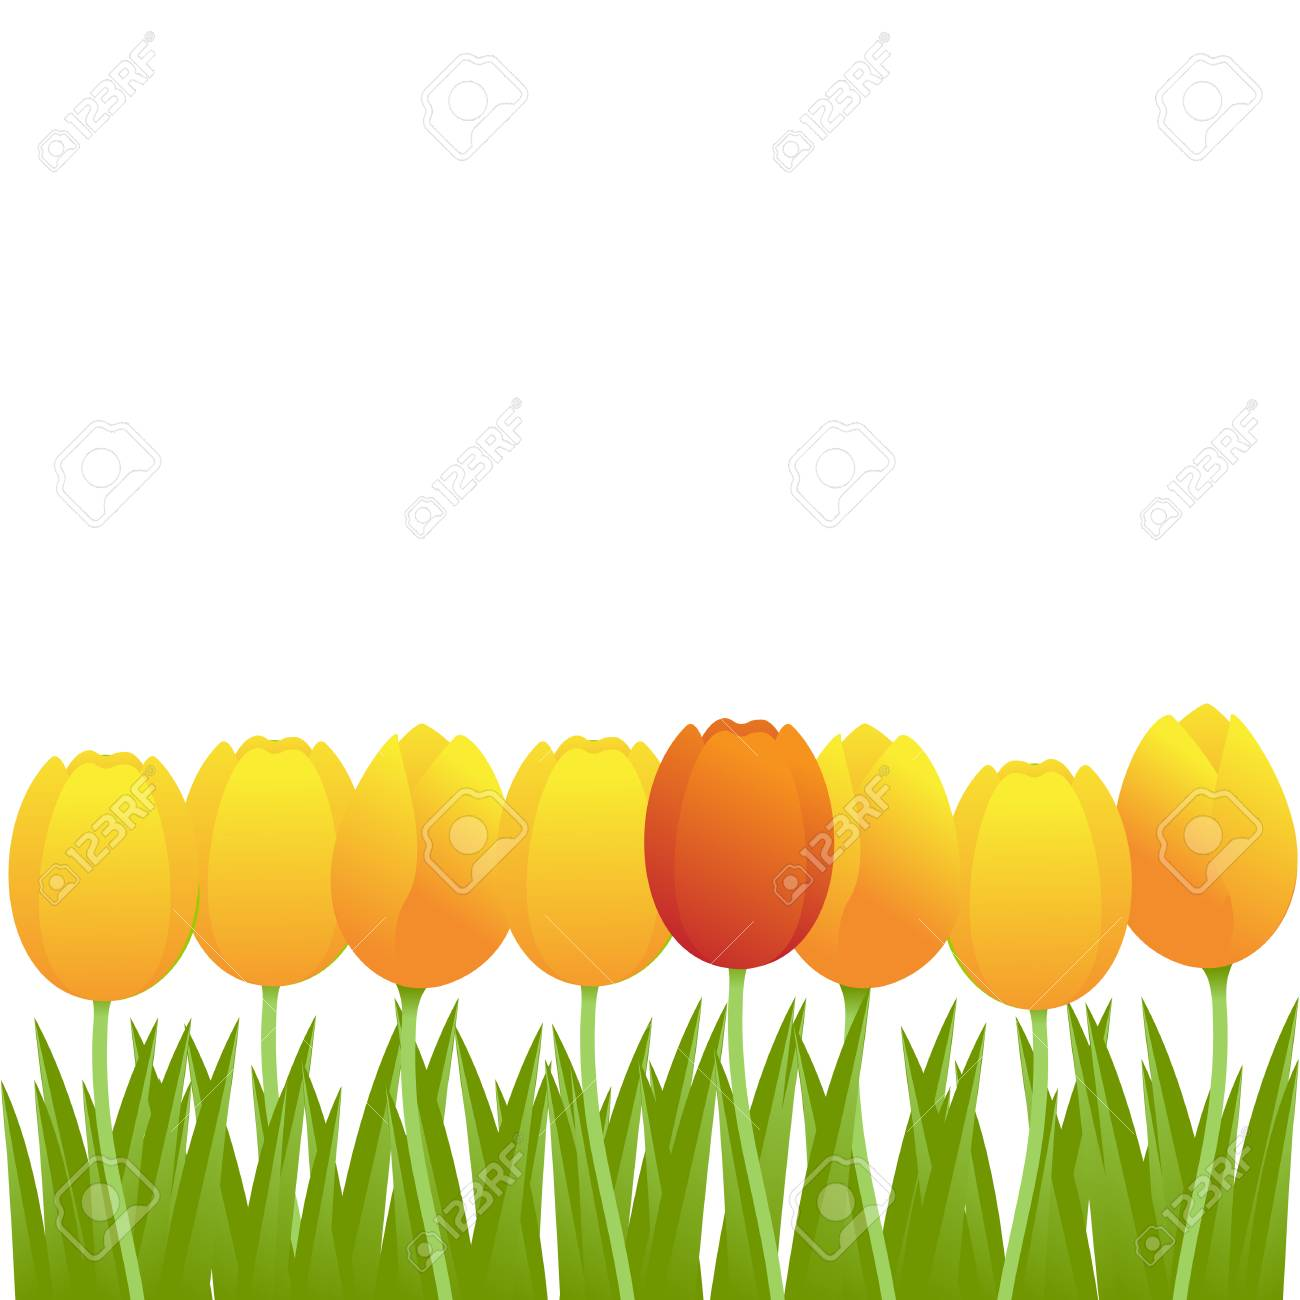 Bright yellow and single red tulips isolated on white background. Vector illustration. Stock Vector - 6559901